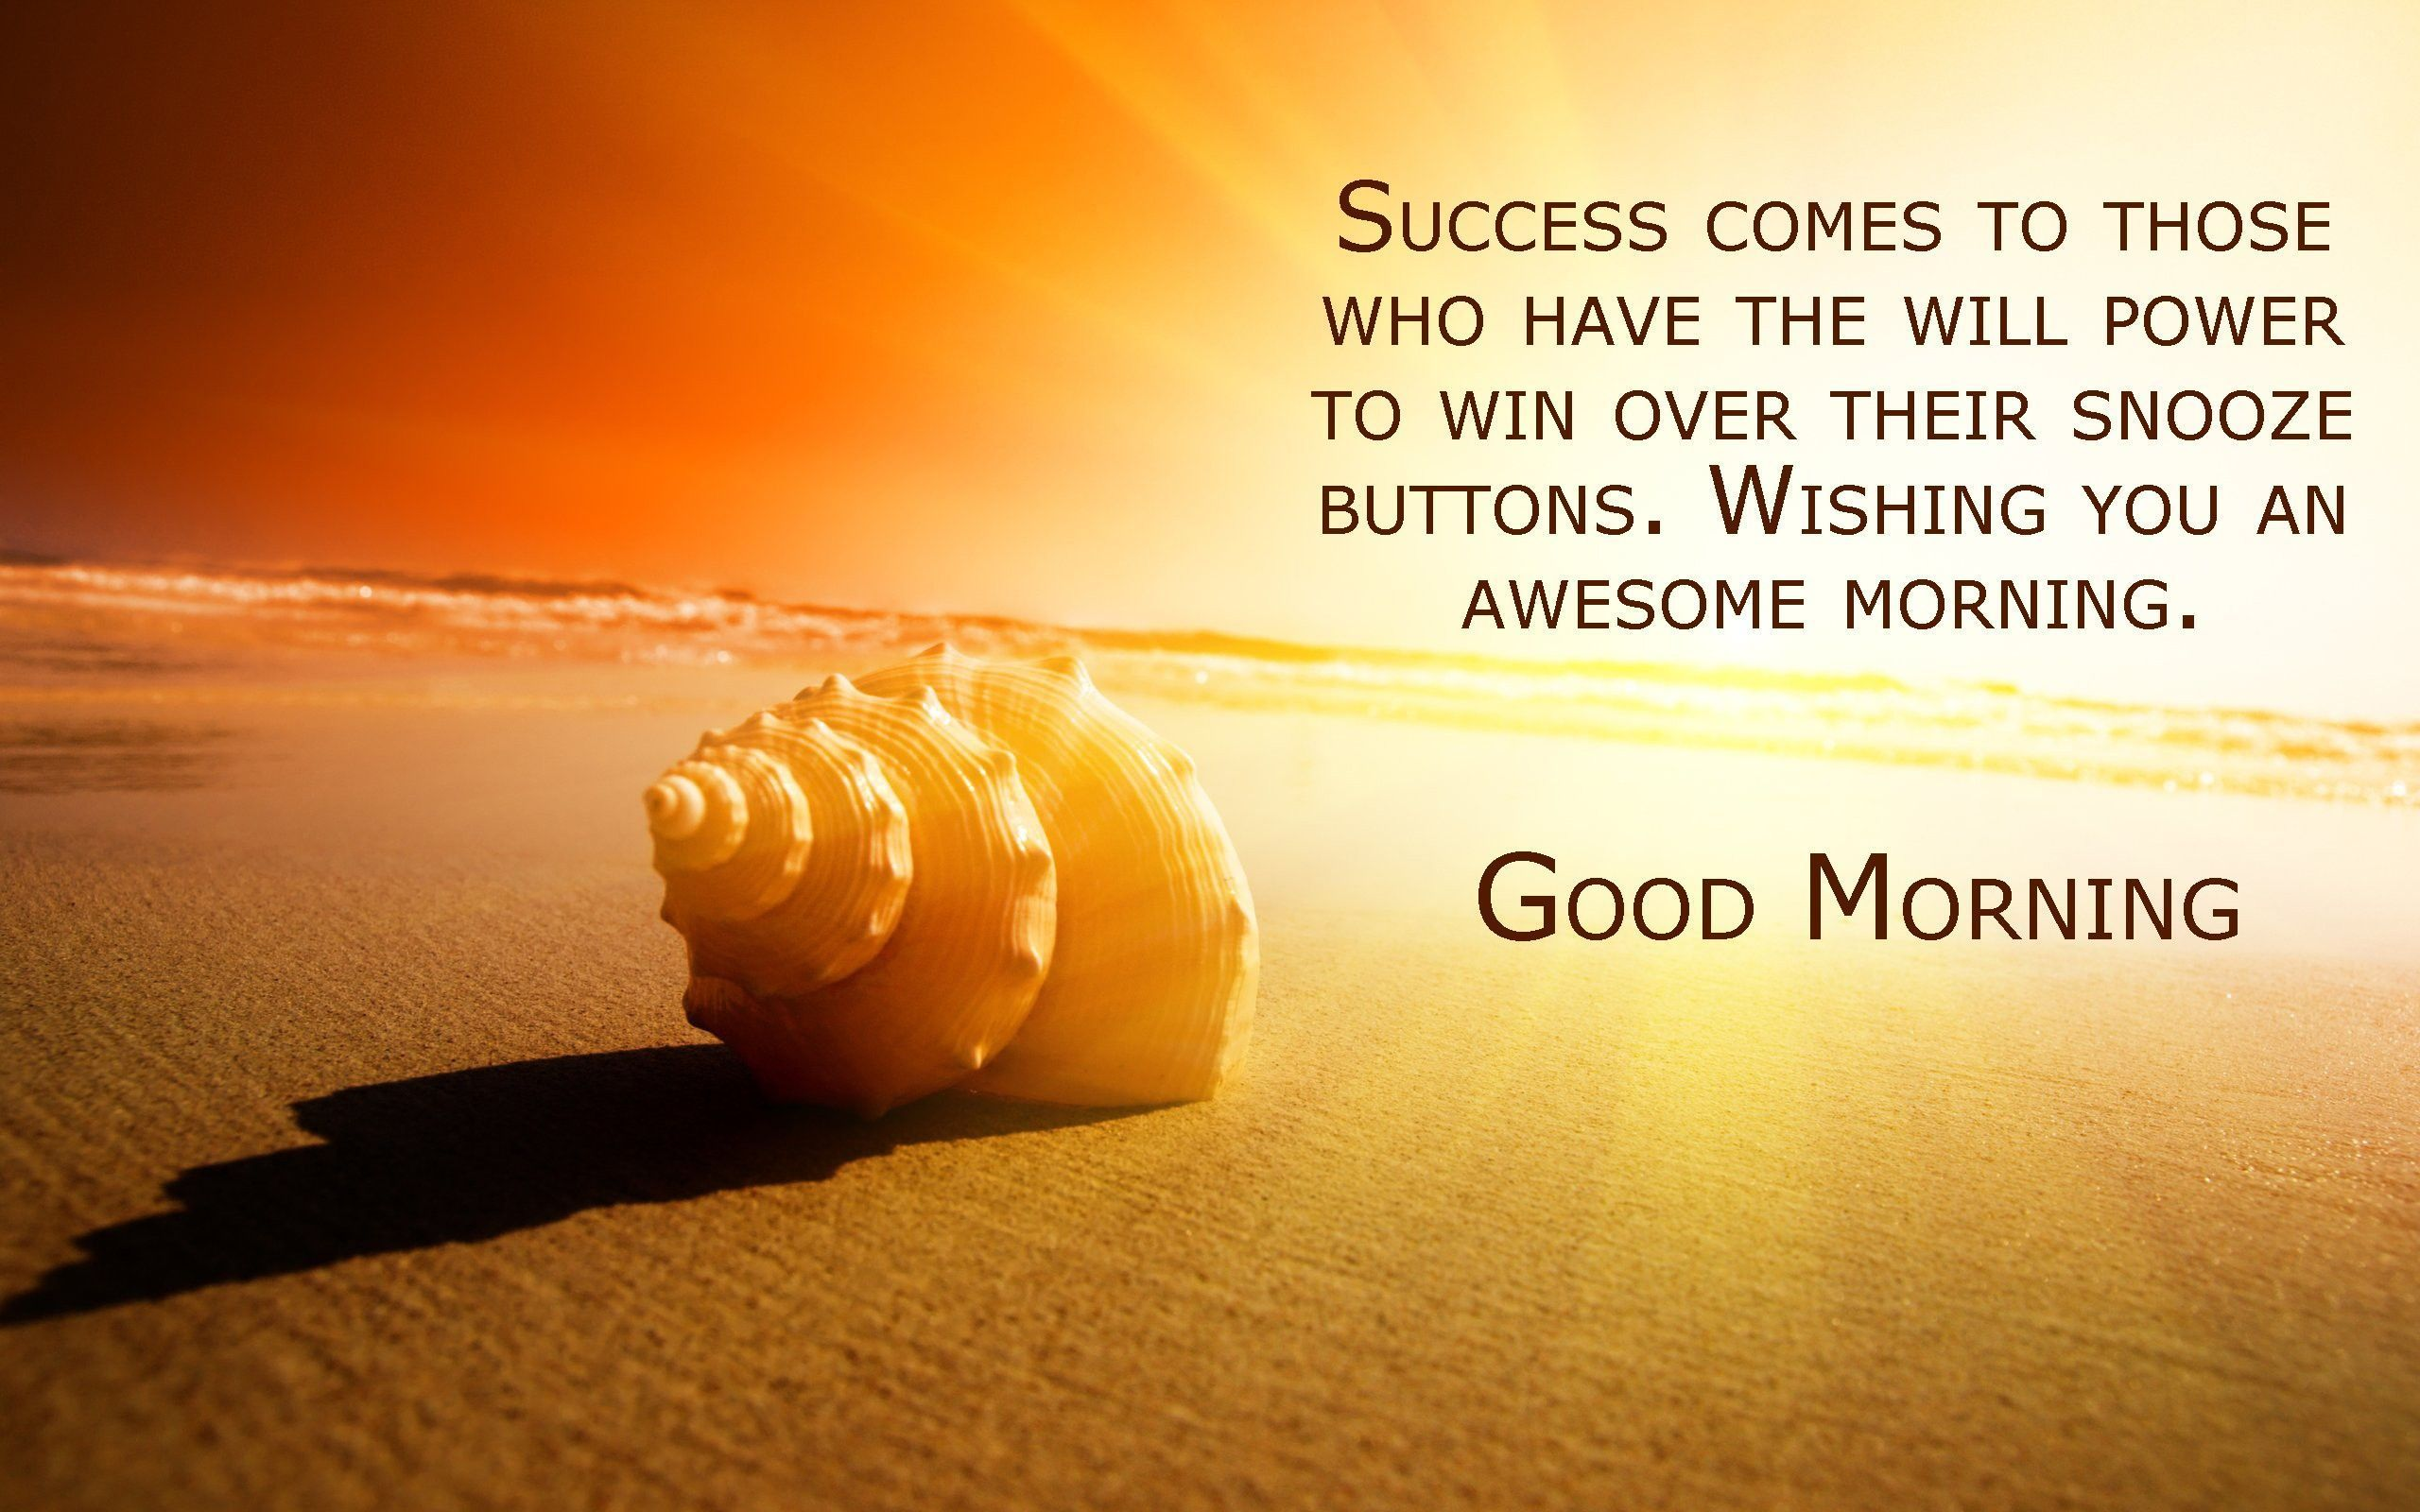 Get Up And Make Your Dreams Happen Good Morning Quotes Success Quotes Good Morning Texts